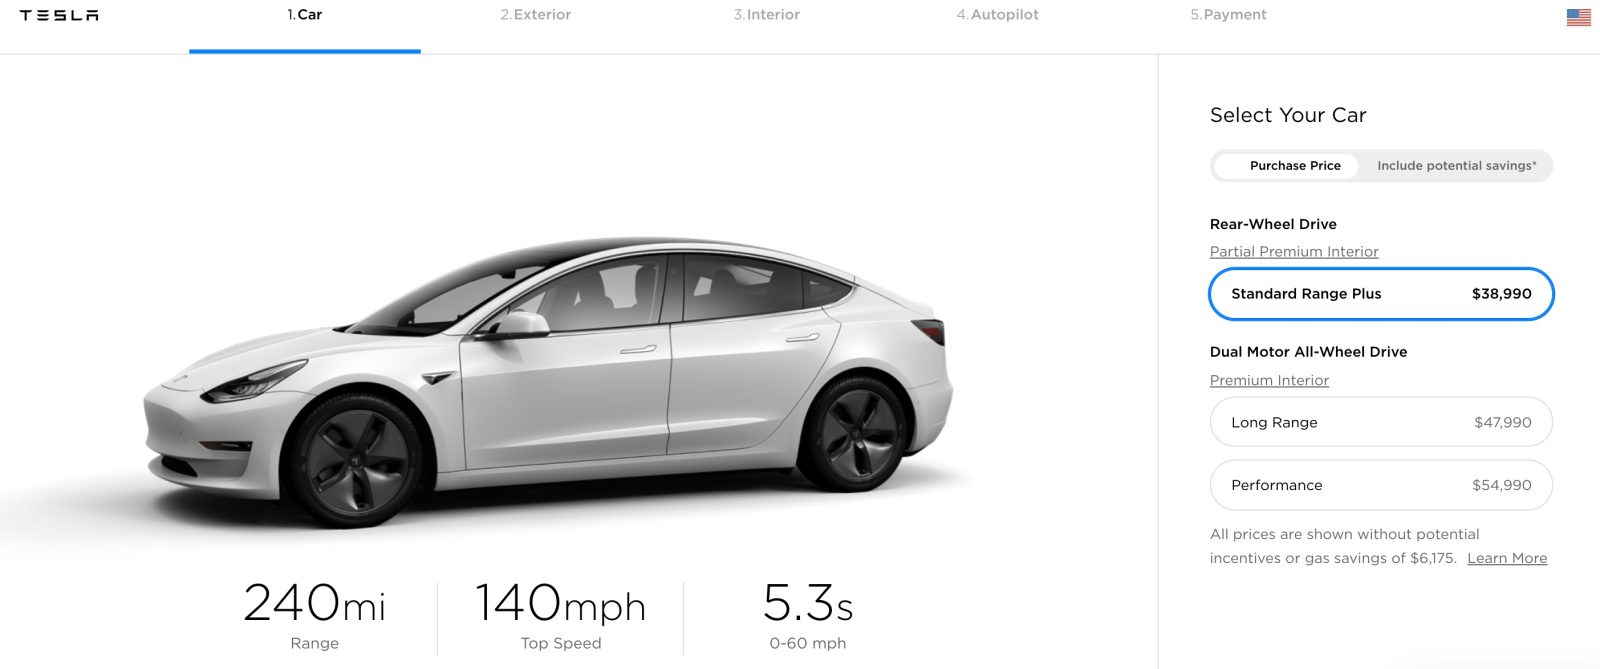 Tesla updates pricing and options across lineup, discontinues several variants | Electrek